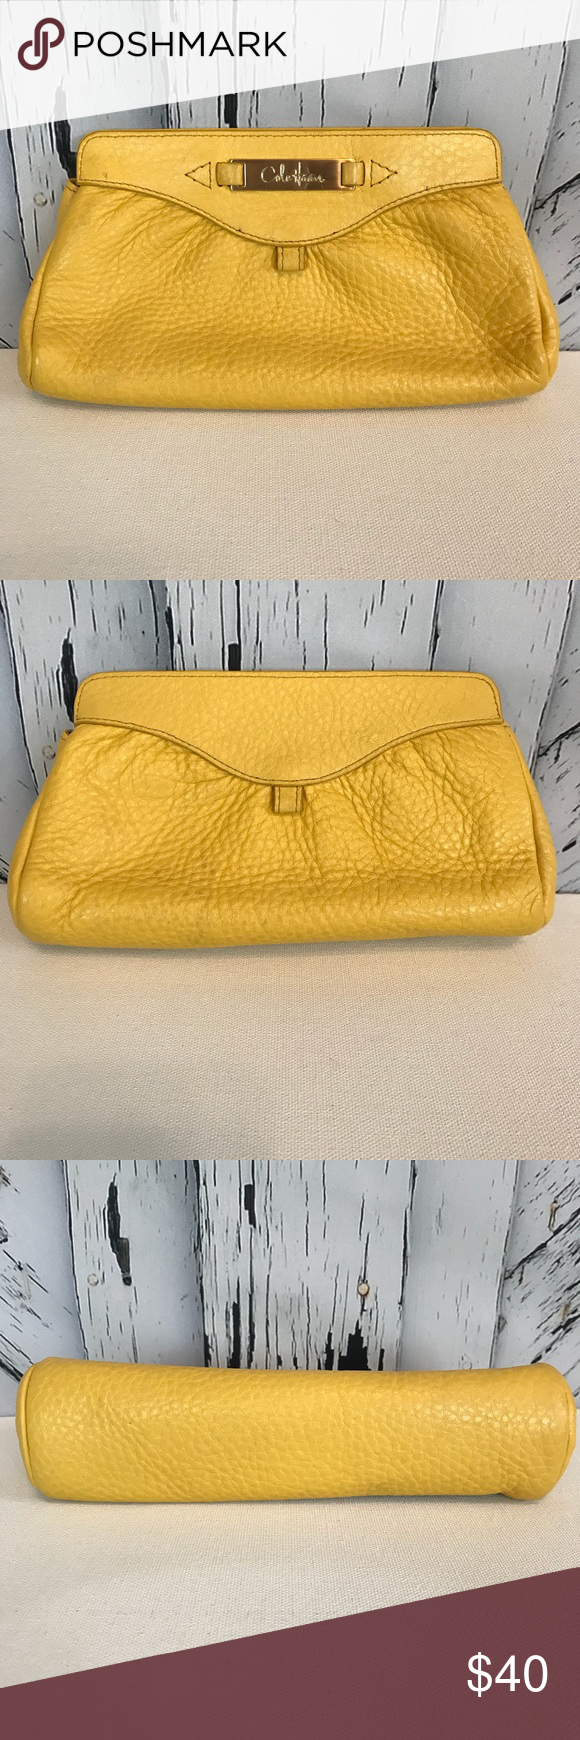 9ccbbd0fd06 Cole Haan Yellow Leather Clutch Purse Bag Adorable little yellow leather  clutch purse. Magnetic closure